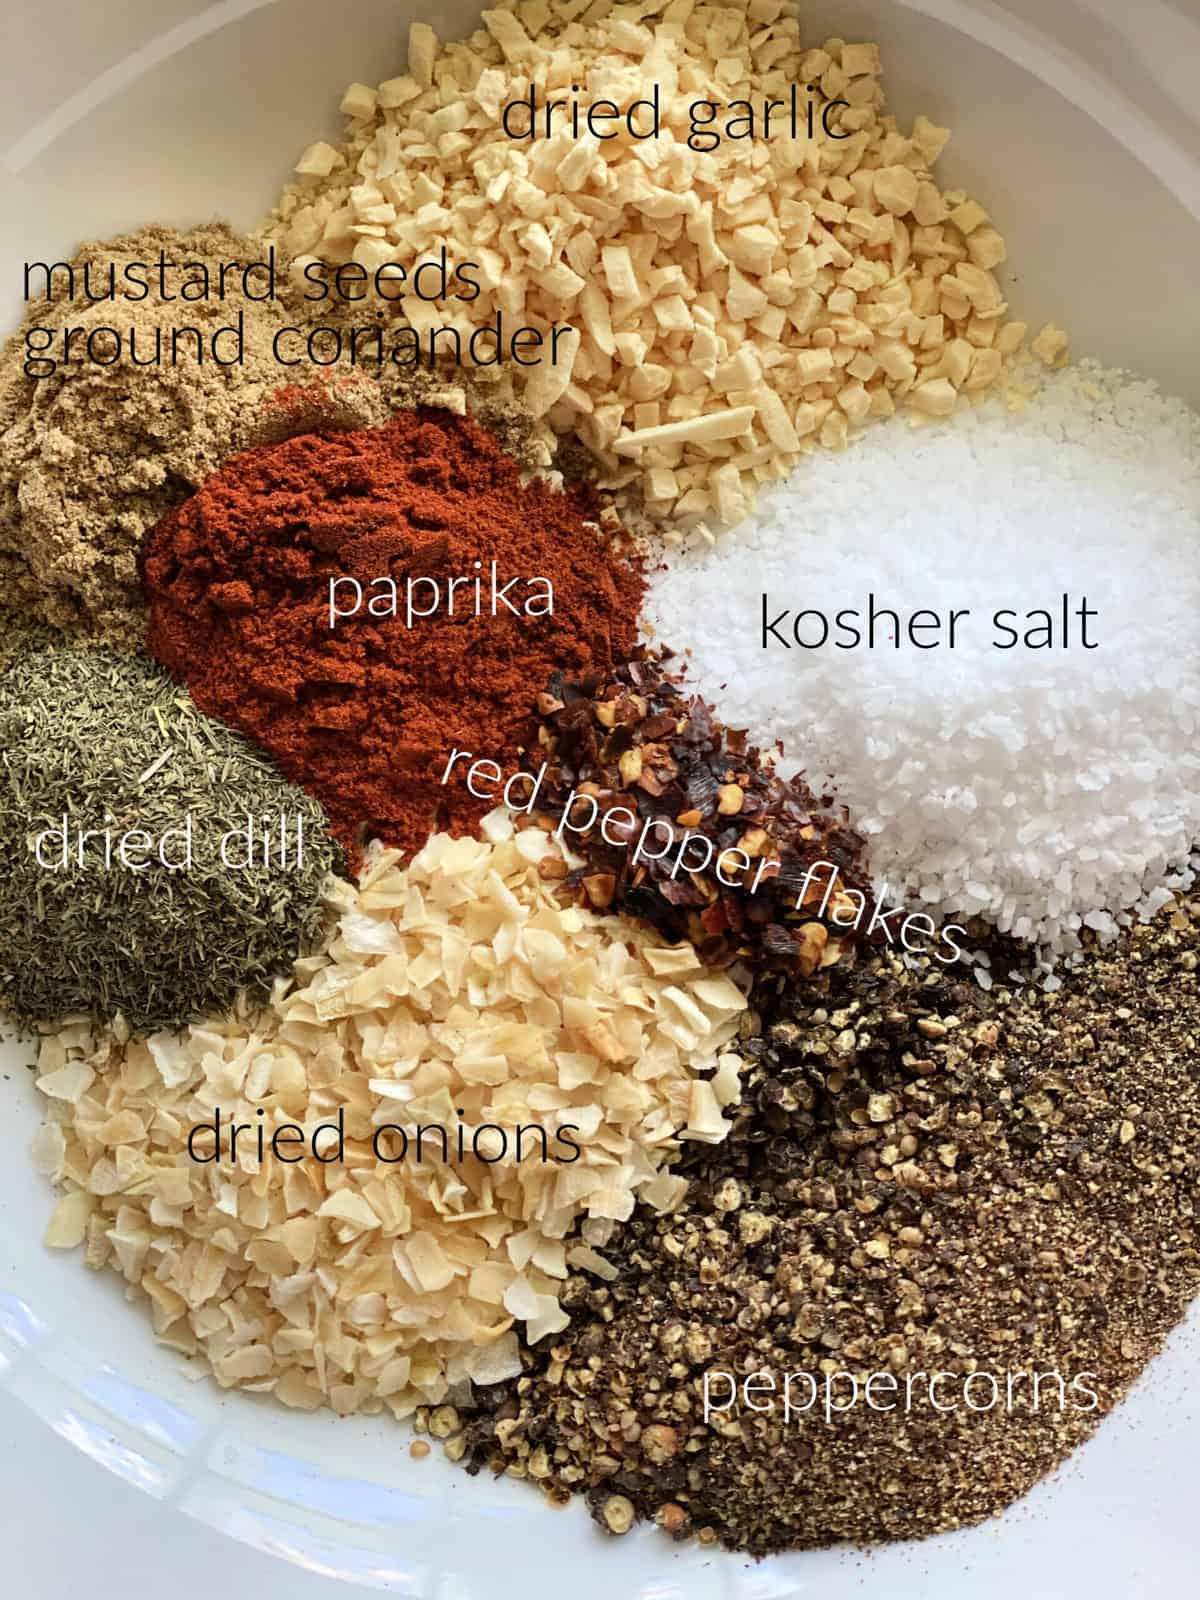 Spices in a dish; paprika, salt, pepper, red pepper, dried onions, dill, mustard seeds, coriander, and dried garlic.